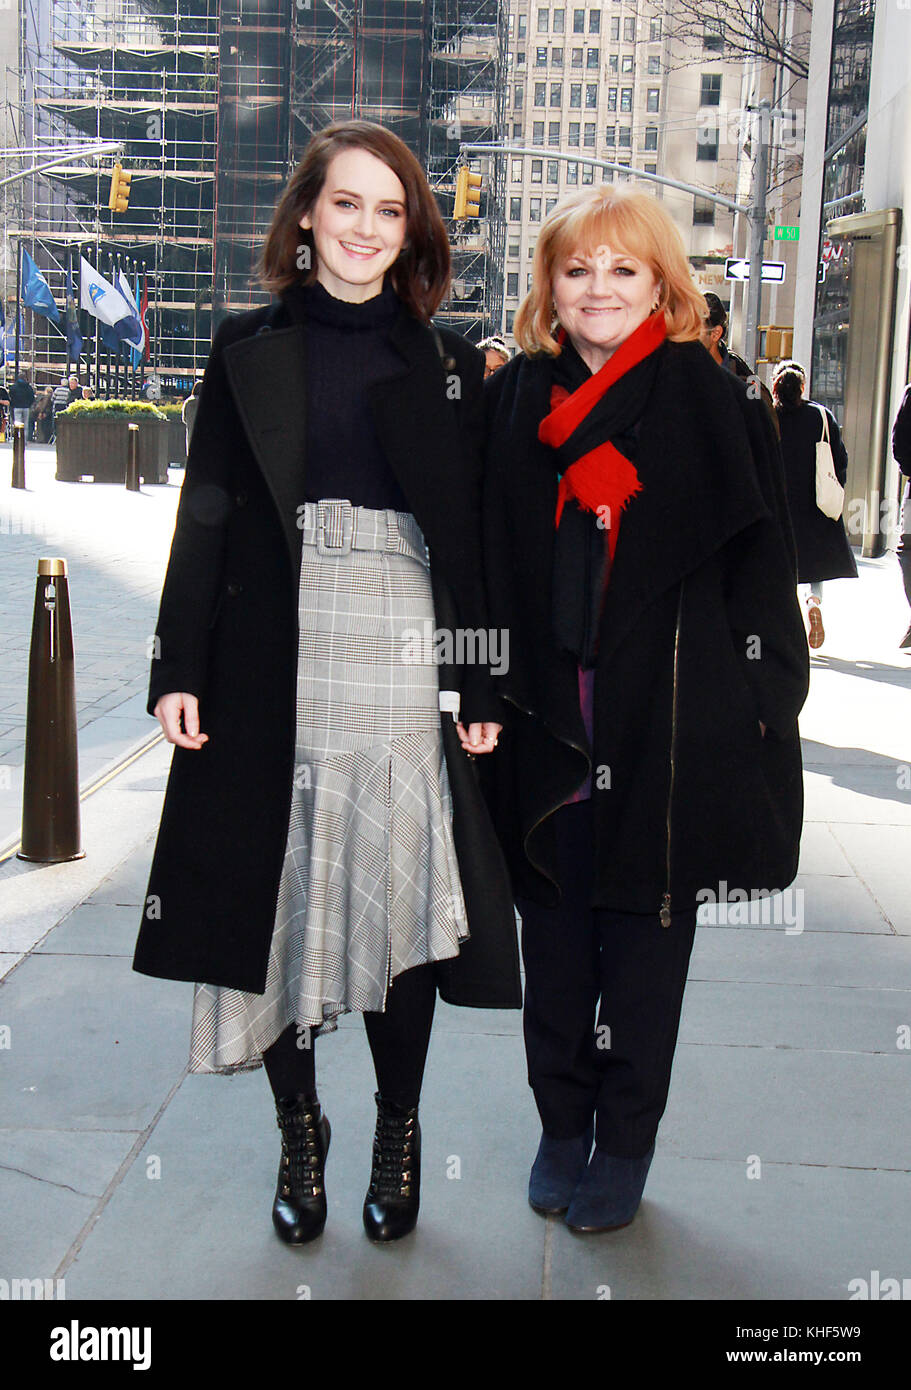 New York, NY, USA. 16th Nov, 2017. Sophie McSheera and Lesley Nicol at New York Live promoting the new Downton Abbey - Stock Image